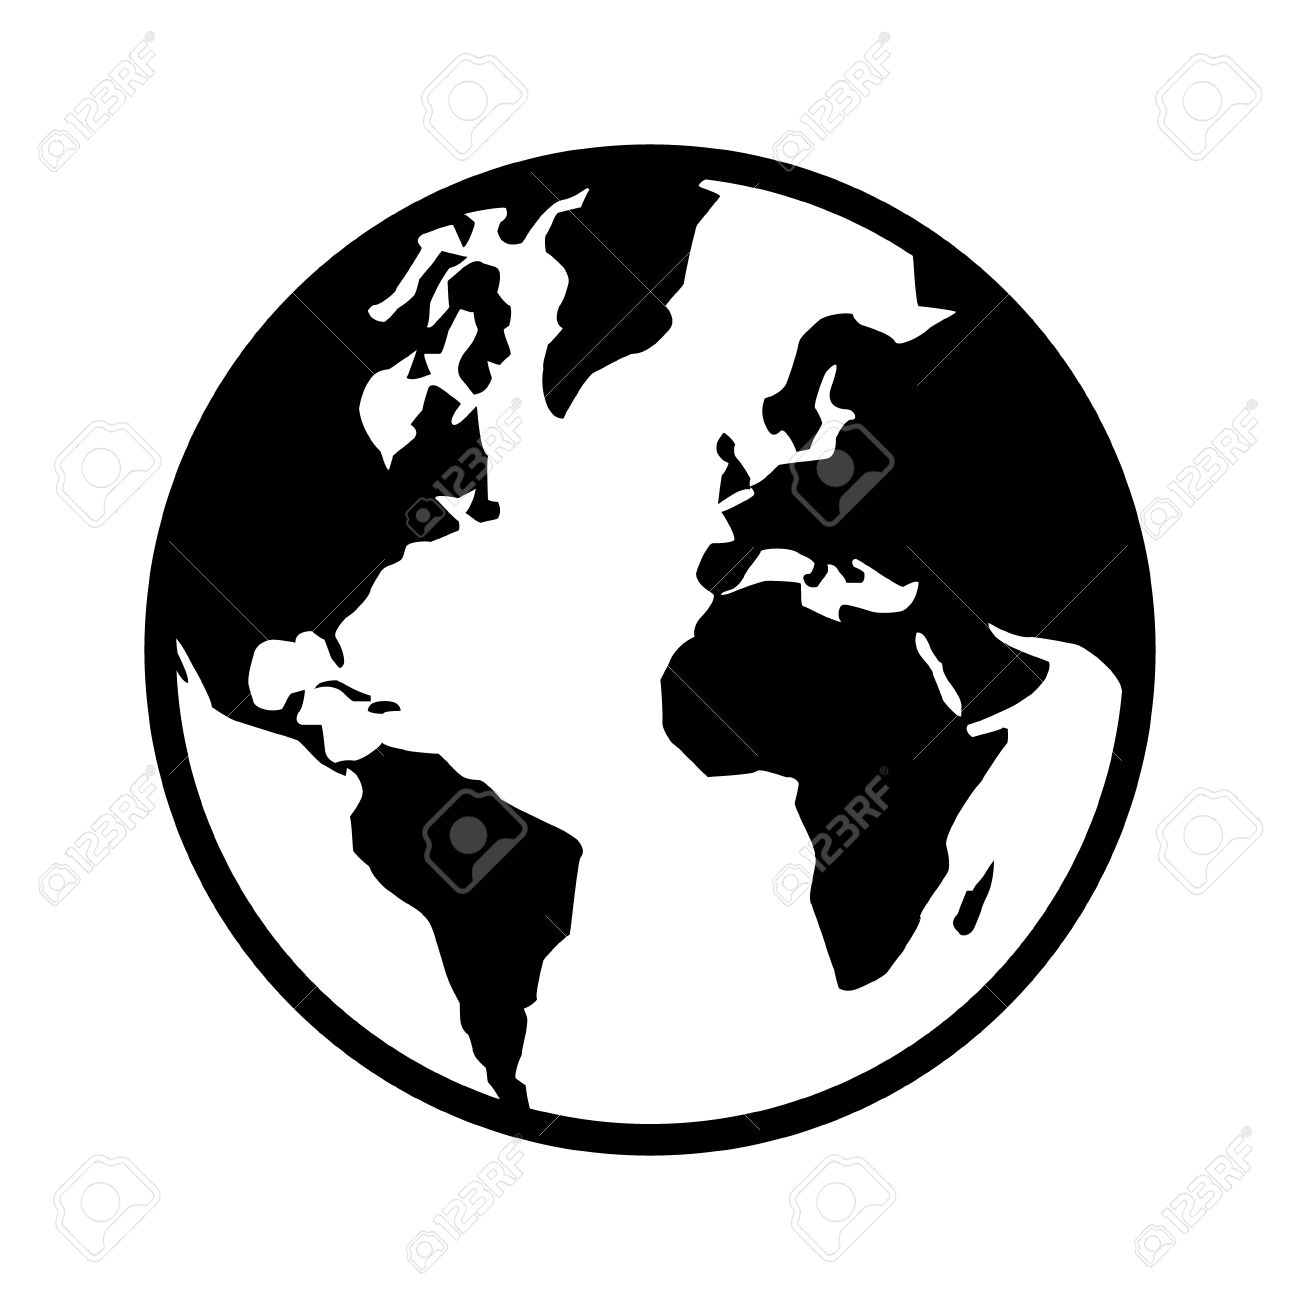 World map globe or planet earth world map line art icon for apps world map globe or planet earth world map line art icon for apps and websites gumiabroncs Gallery